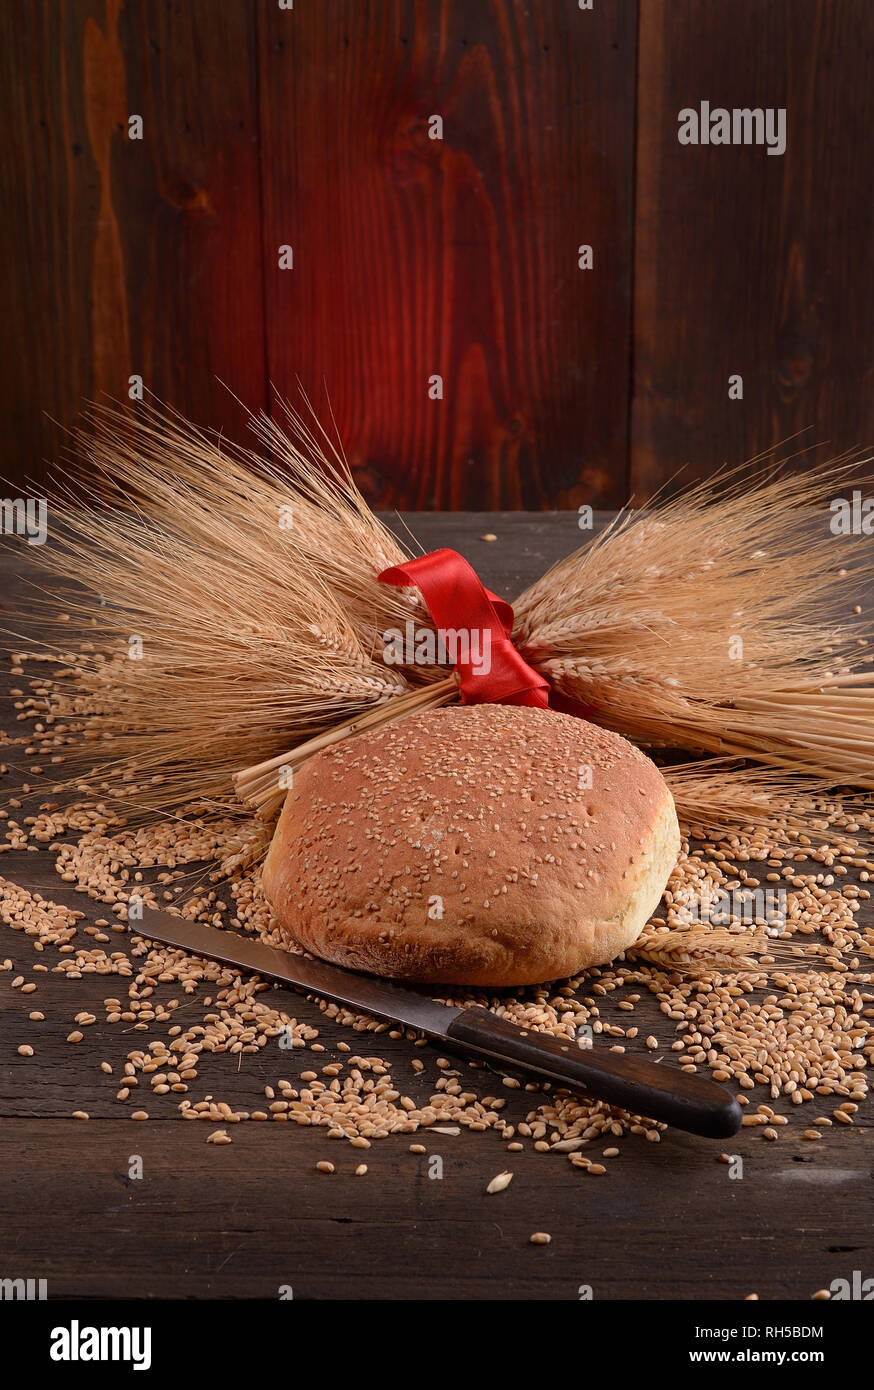 Rustic home-made bread with ears of corn on wooden table - Stock Image